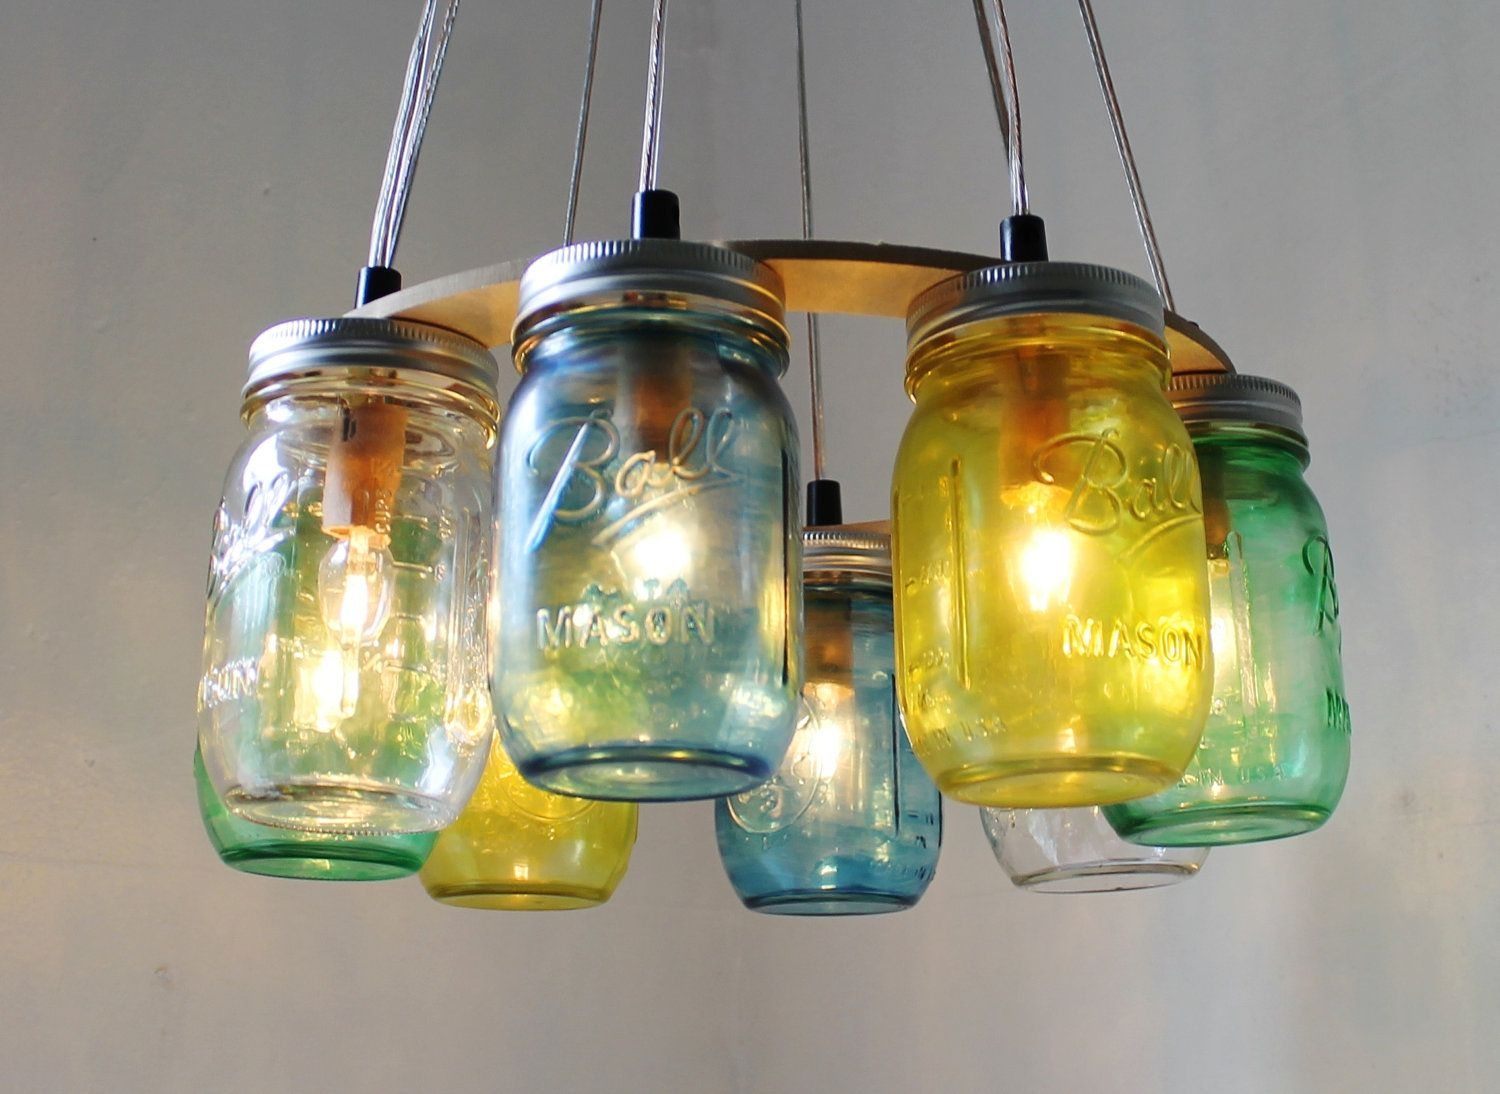 Sea glass mason jar chandelier upcycled hanging mason jar lighting sea glass mason jar chandelier upcycled hanging mason jar lighting fixture direct hardwire bootsngus arubaitofo Image collections